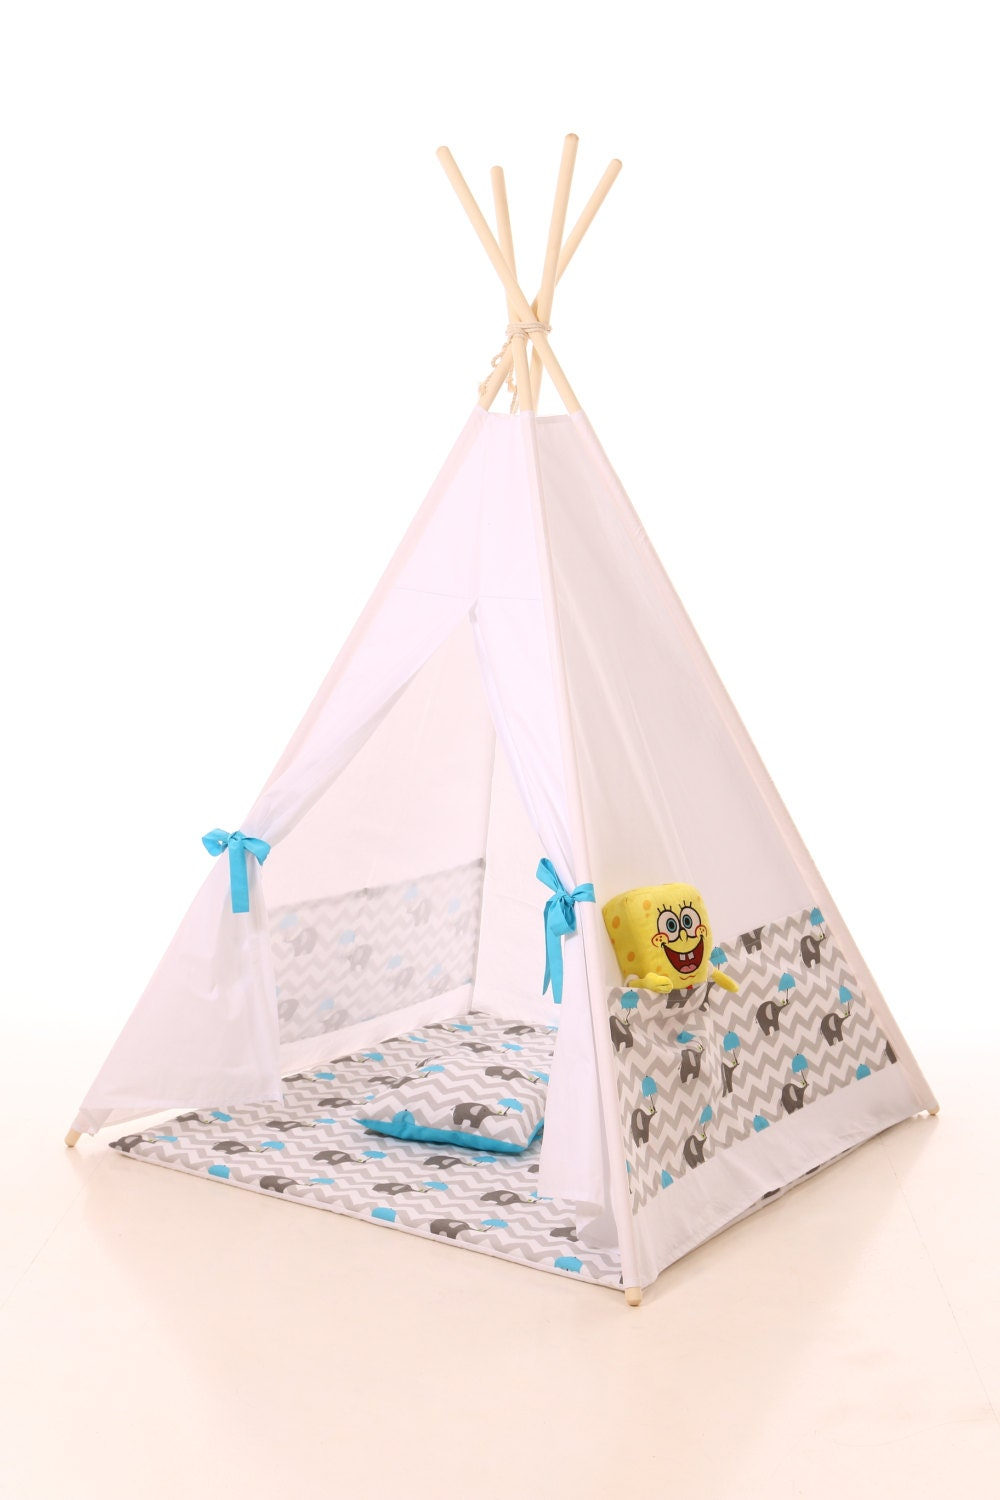 Kids Teepee Pillow Play Tent Wigwam Children 39 S Teepee